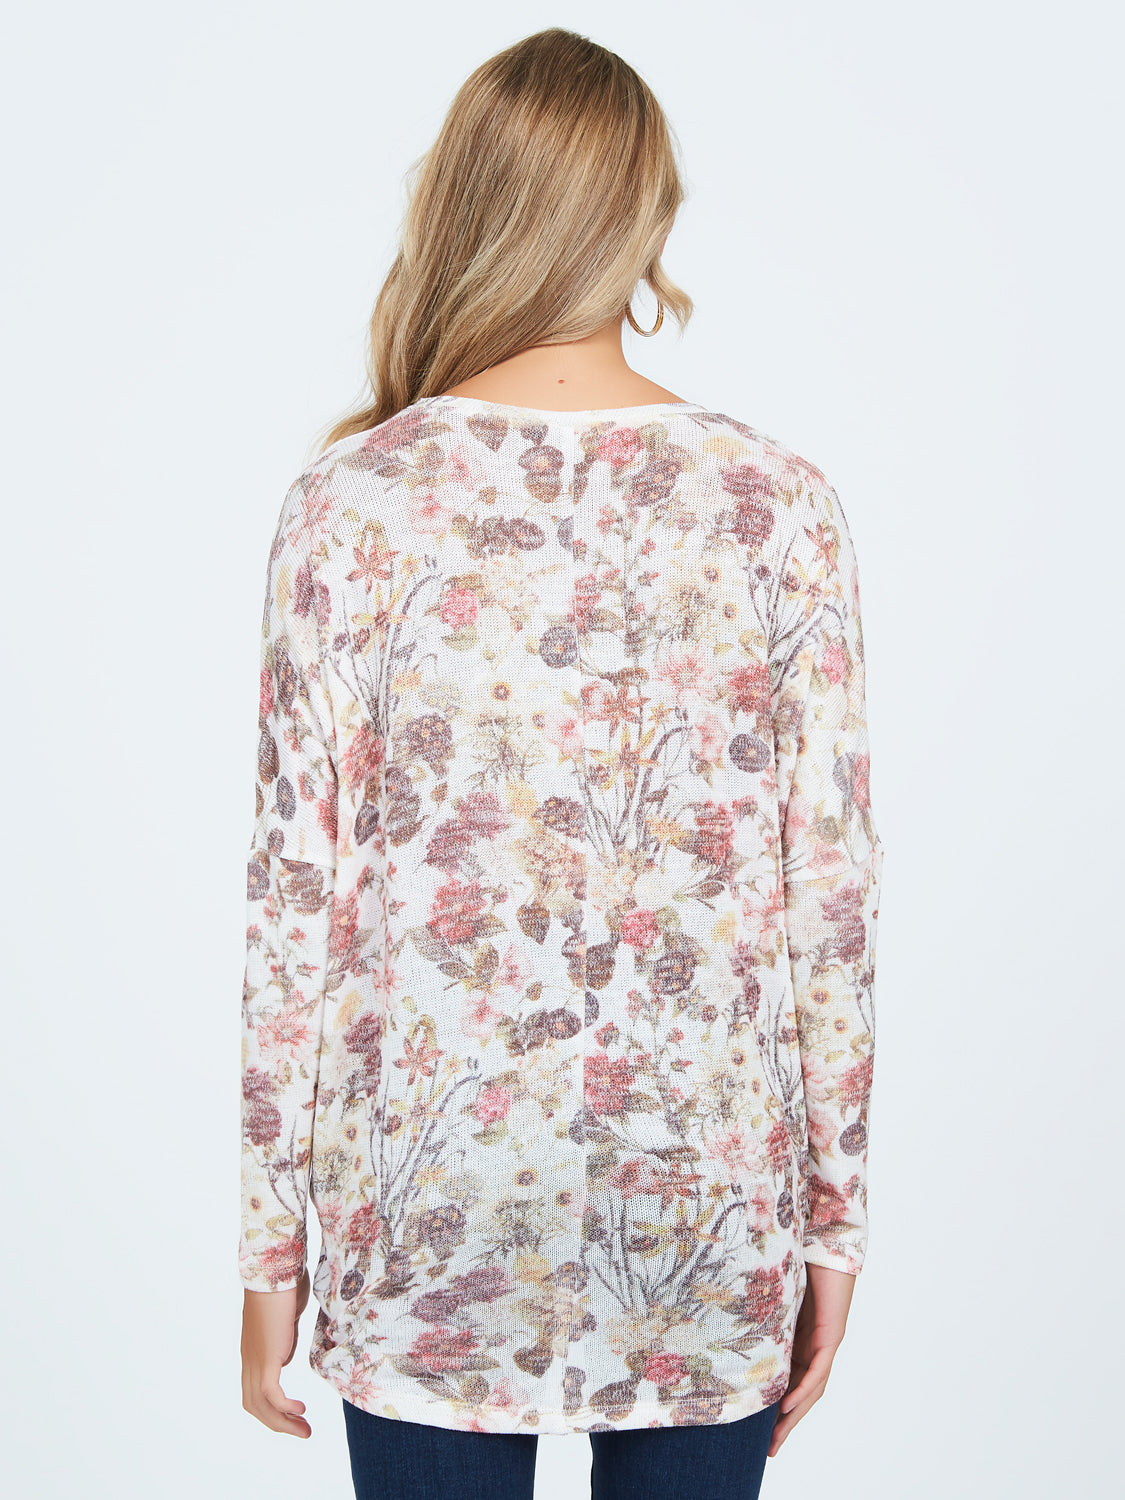 Floral Sublimation Print Sweater Knit Top